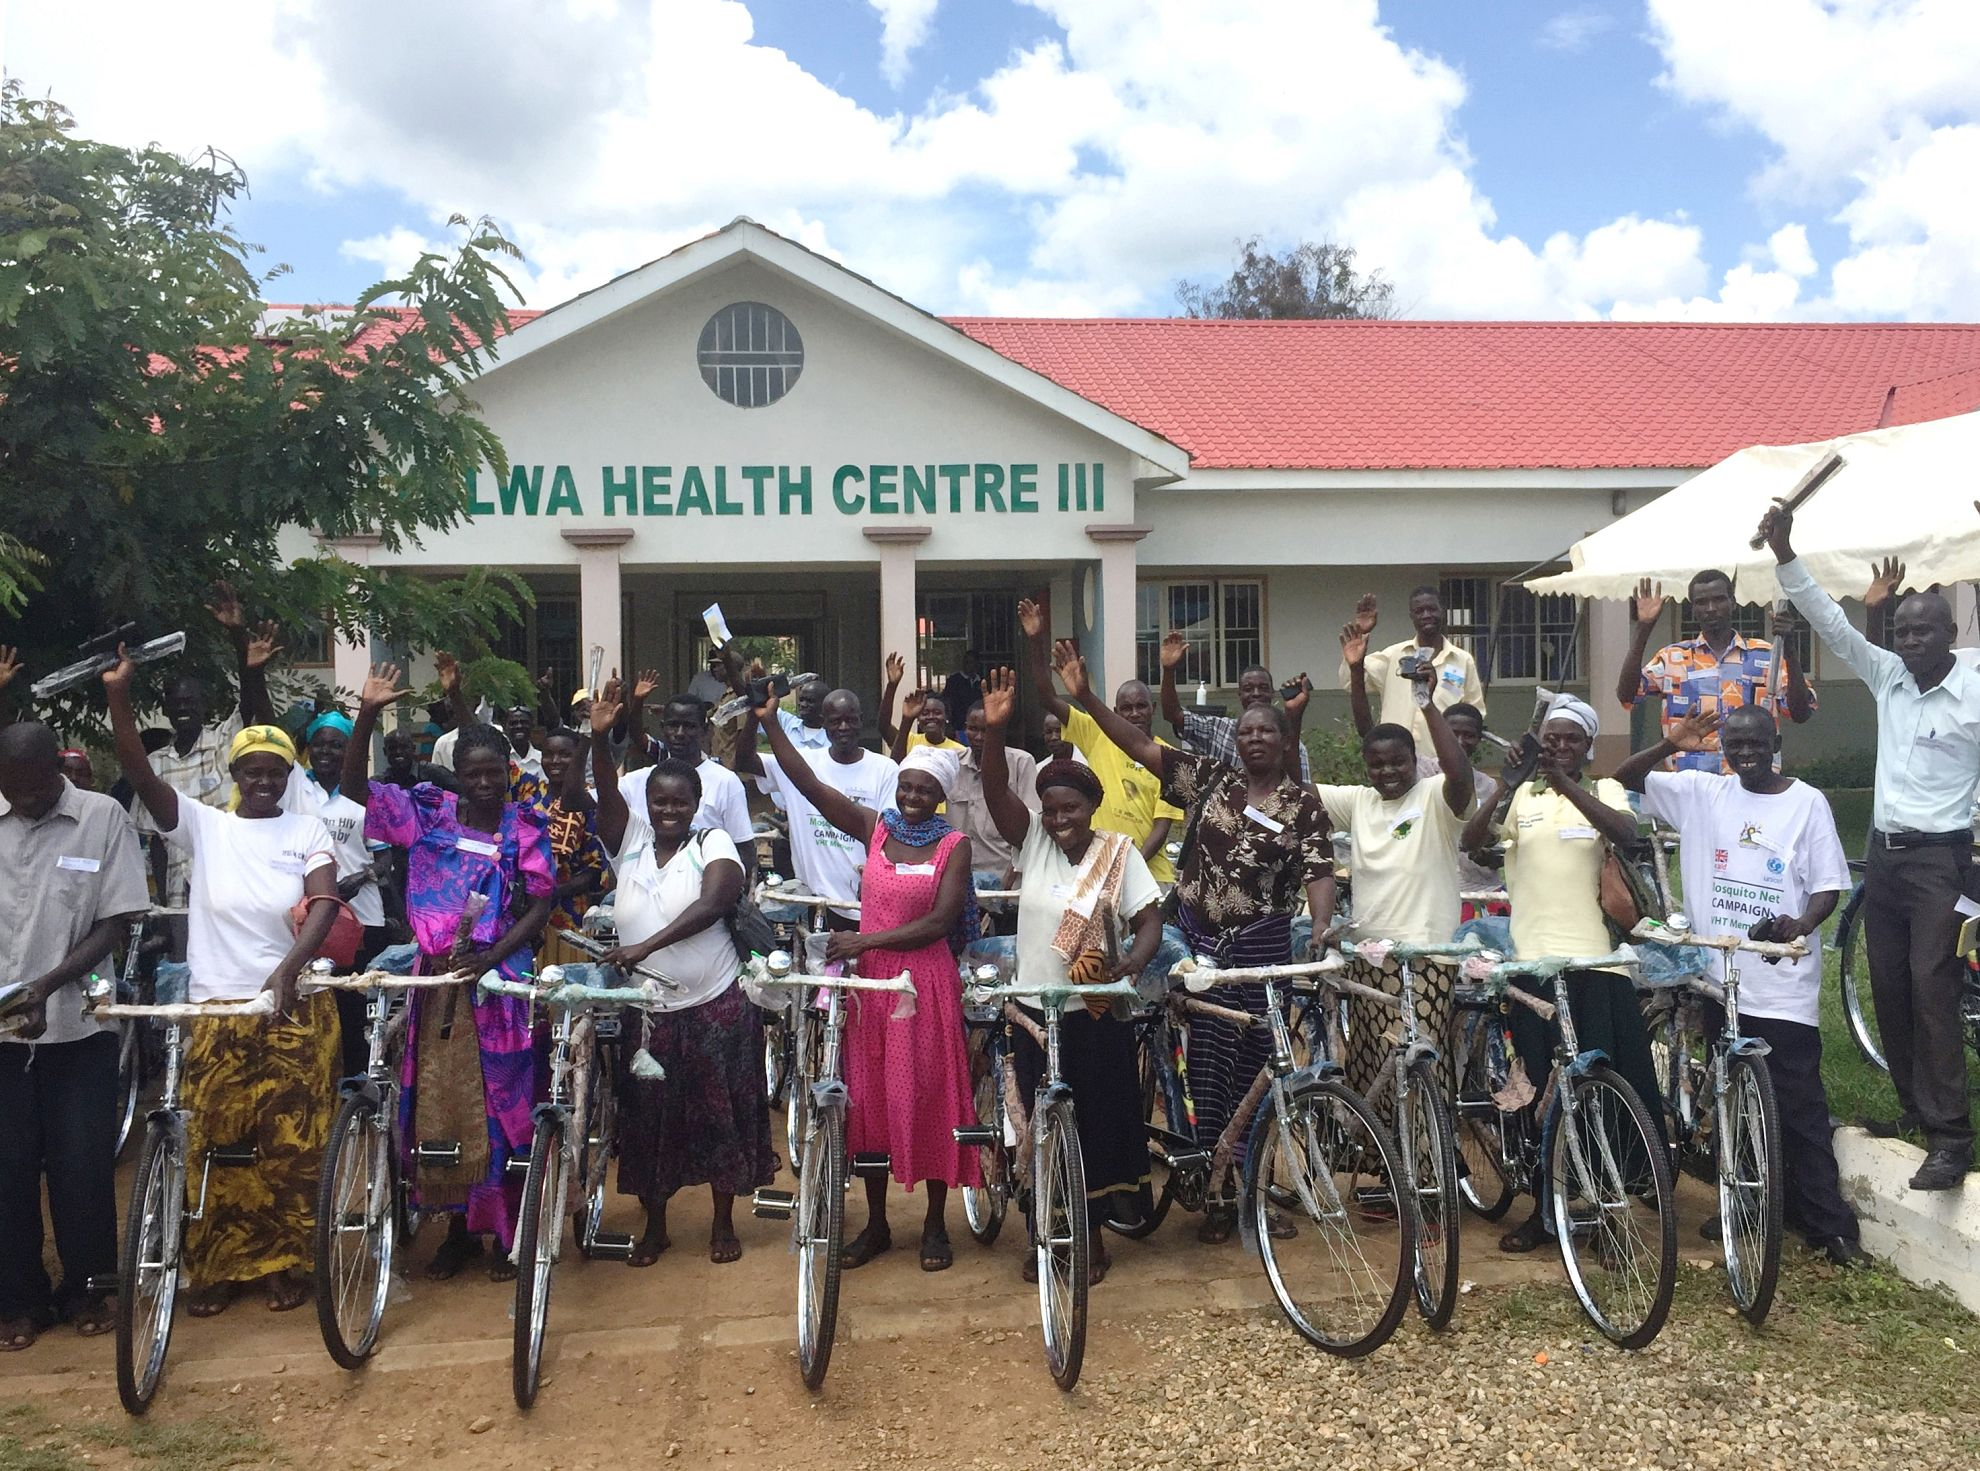 Latest News Fundraising campaign provides ugandan health workers with bicycles to reach more and harder to reach communities